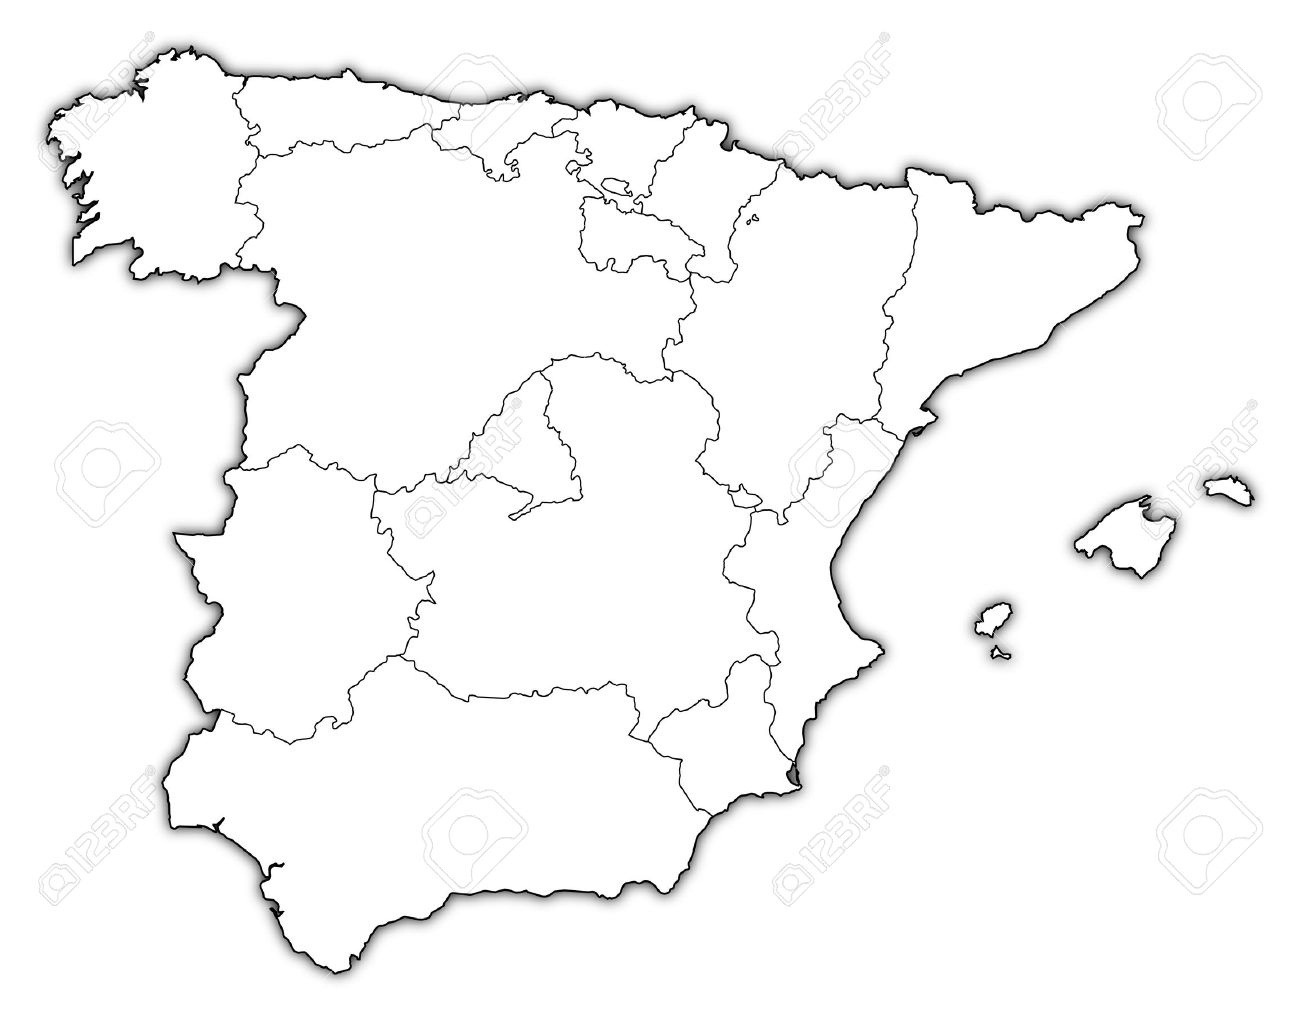 Spain Drawing at GetDrawings.com | Free for personal use ... on map of equatorial guinea in spanish, map of barcelona in spanish, map of paraguay in spanish, map of cities in espana, map of countries that speak spanish, map of the world in spanish, map of china in spanish, map of dominican republic in spanish, map of north america in spanish, map of spanish speaking countries, map of egypt in spanish, map of spanish speaking world, map of united states in spanish, map of austria in spanish, capital of venezuela in spanish, espana capital in spanish, map of trinidad in spanish, map of continents in spanish, map of puerto rico in spanish, map of england in 1500,